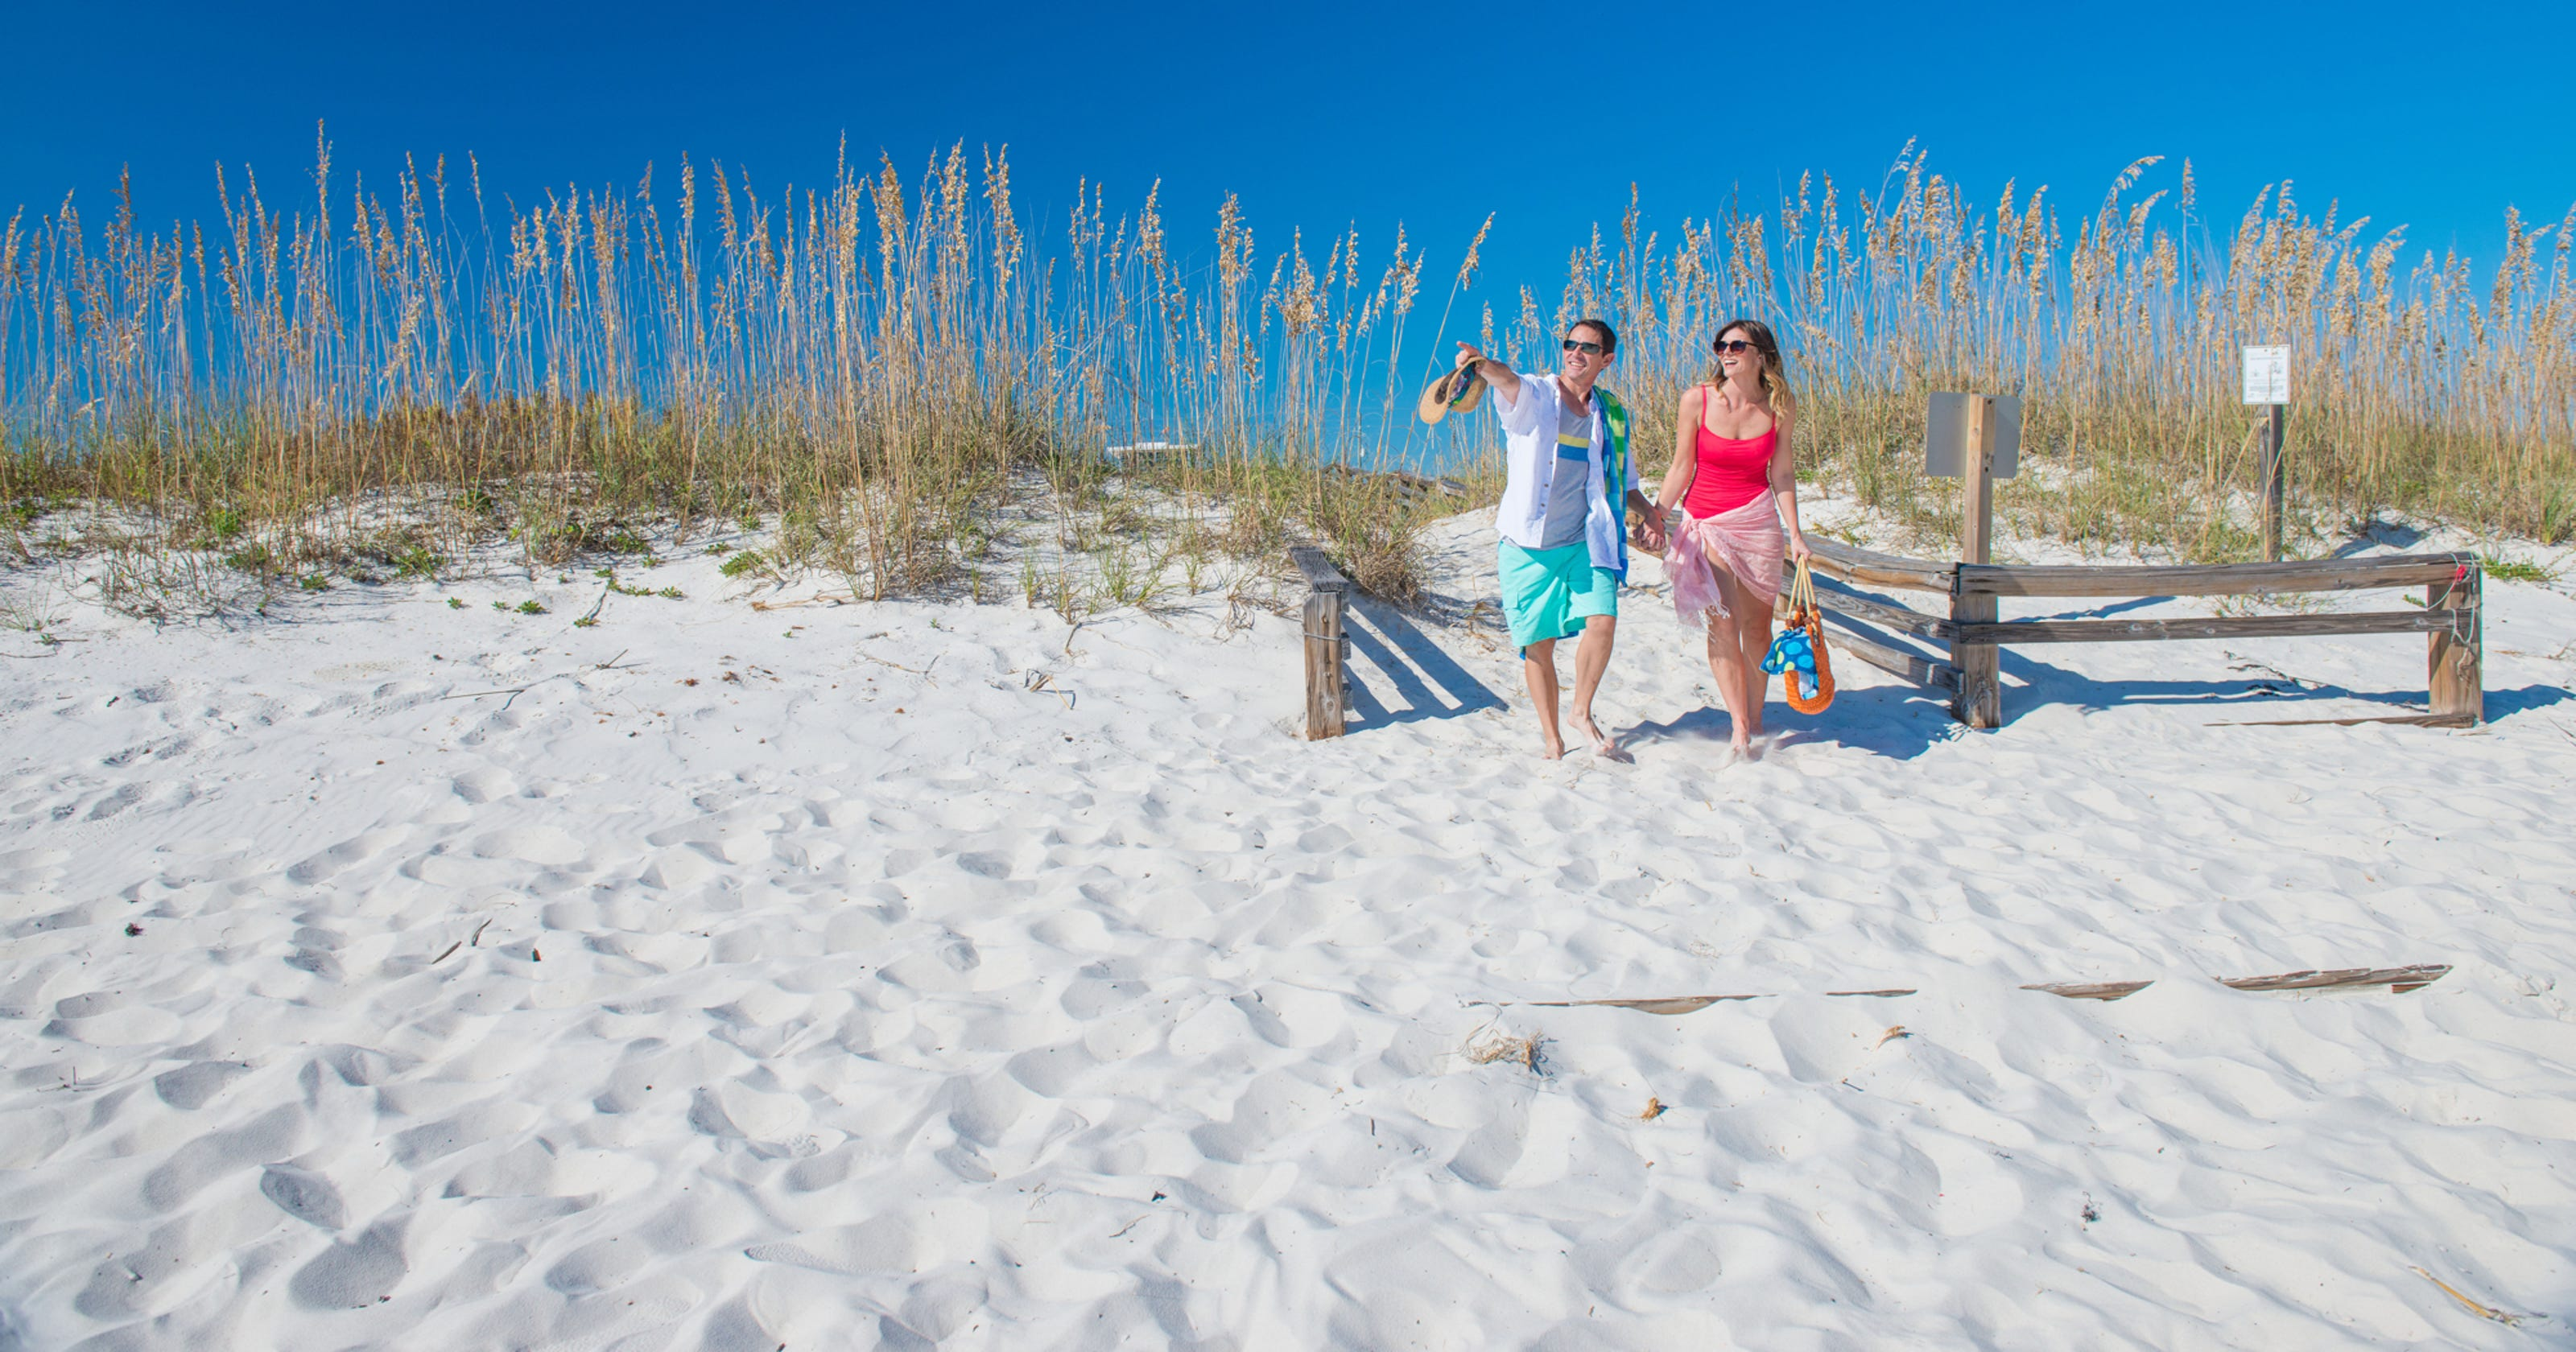 Cheap beach vacation: Why it\'s the best trip for you and your family